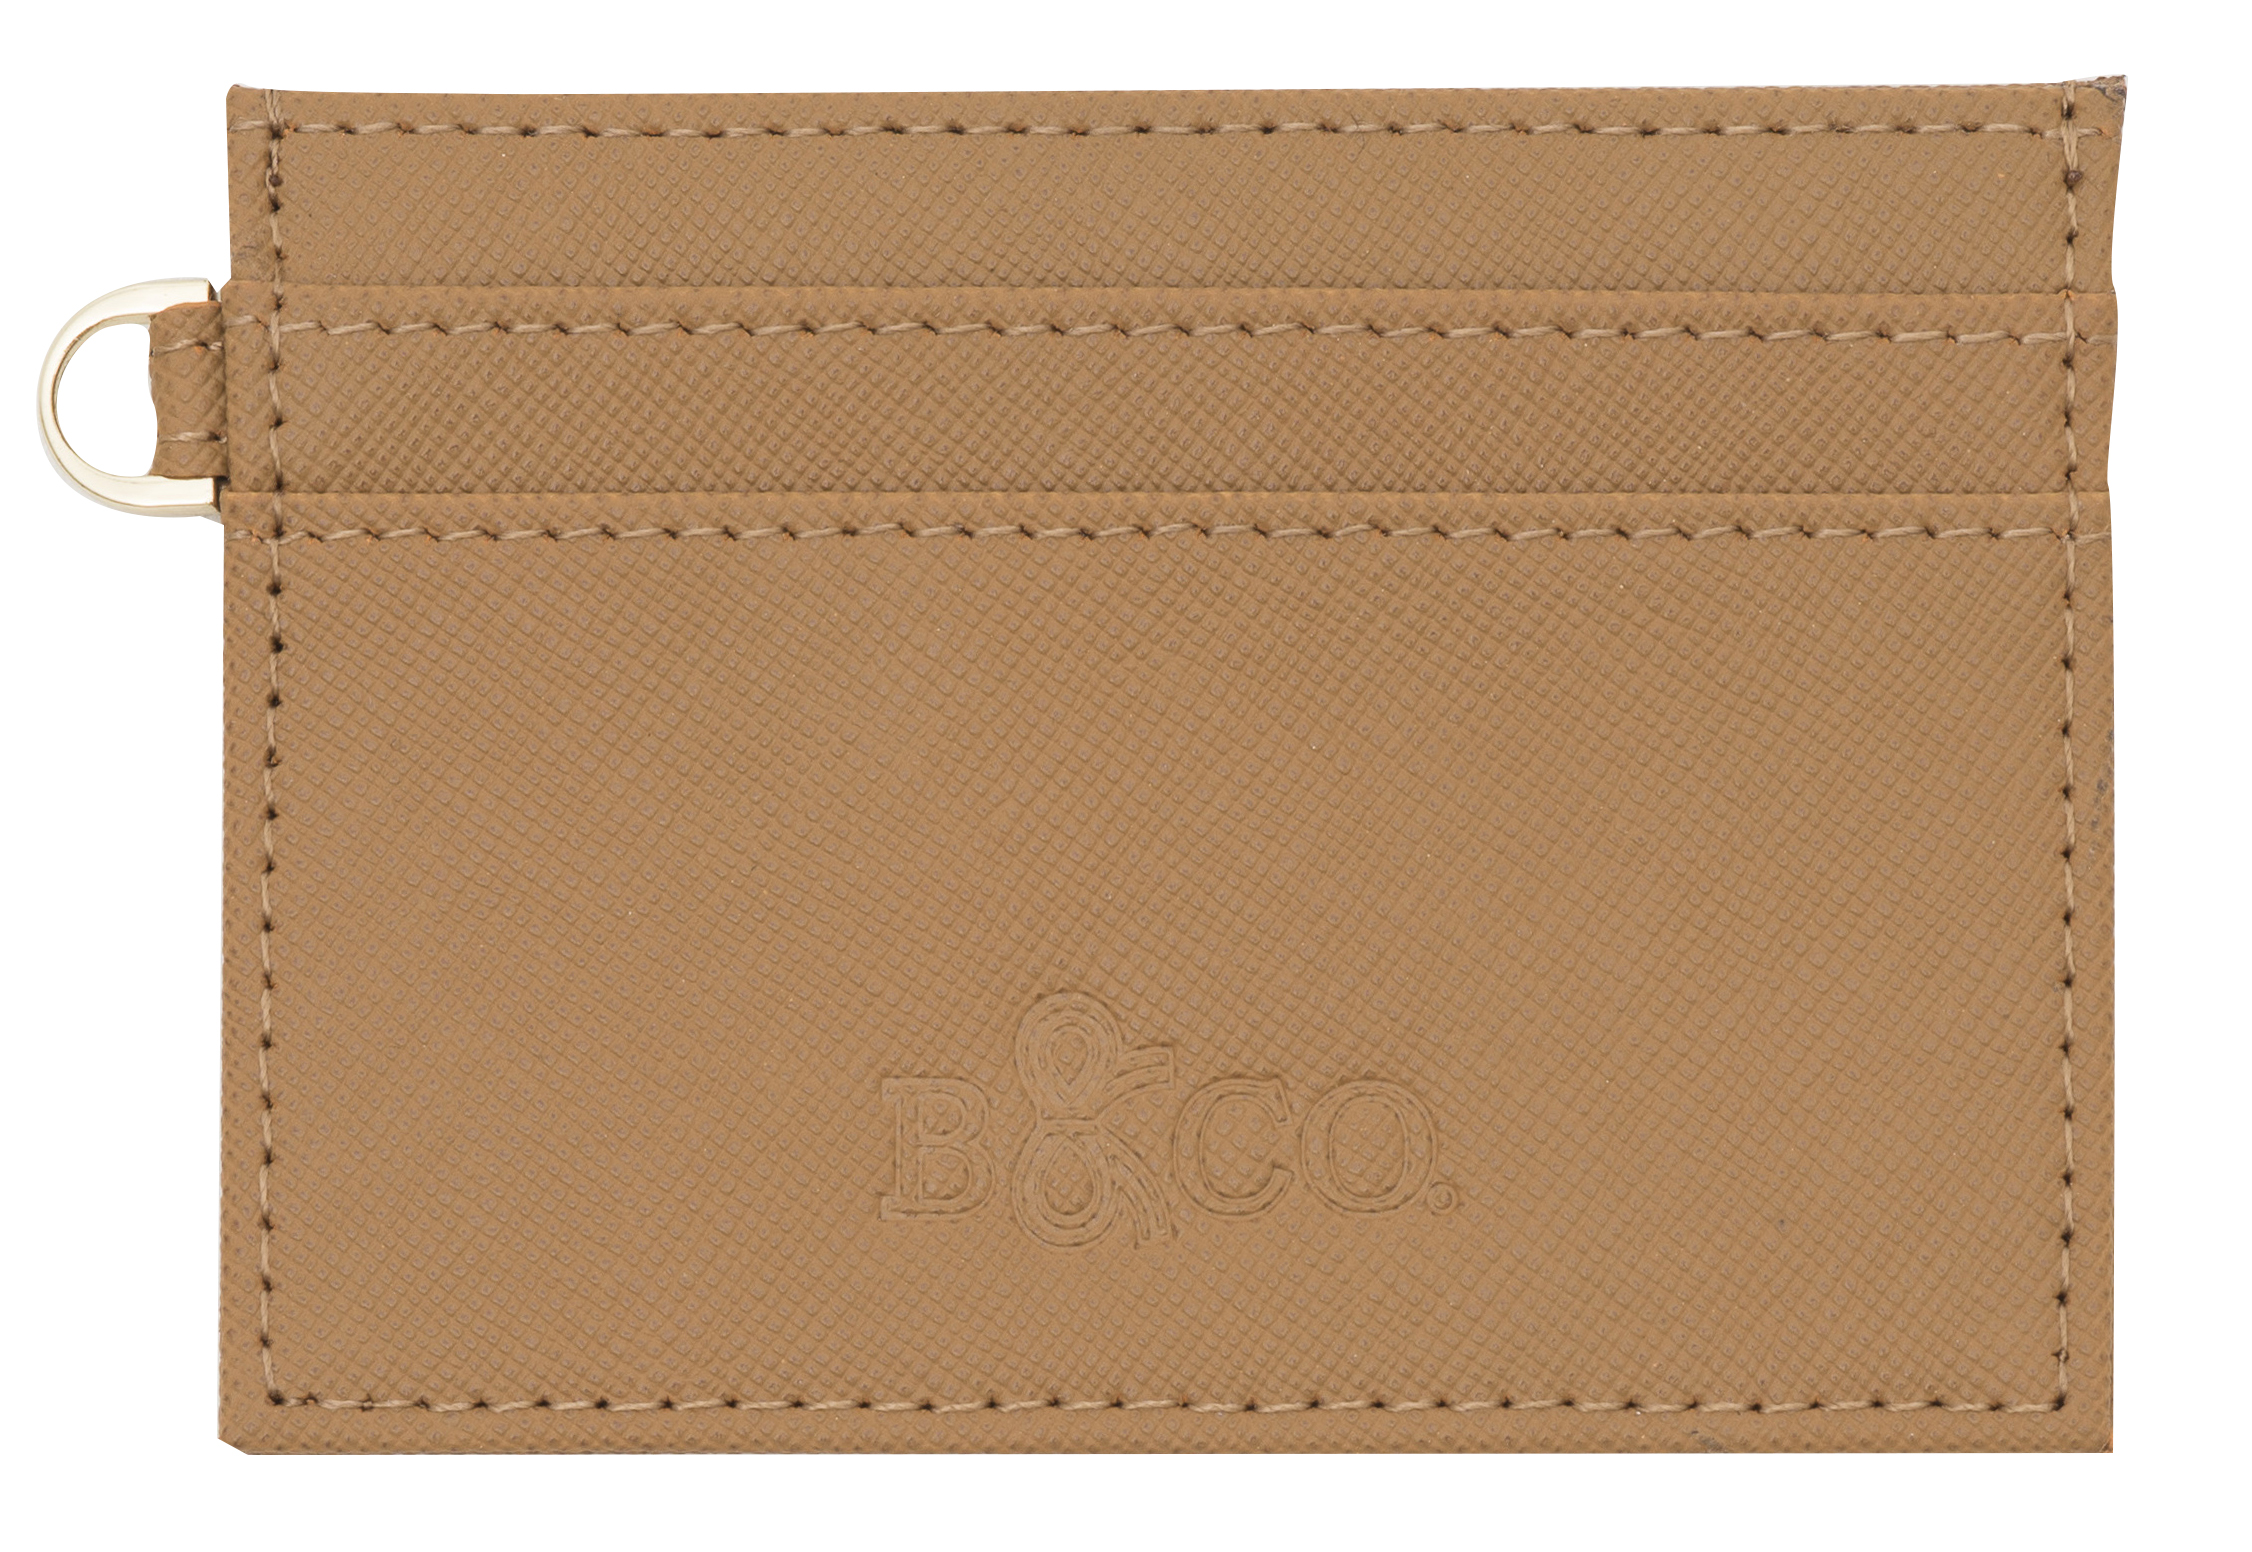 Saffiano Leather Card Holder - Tan